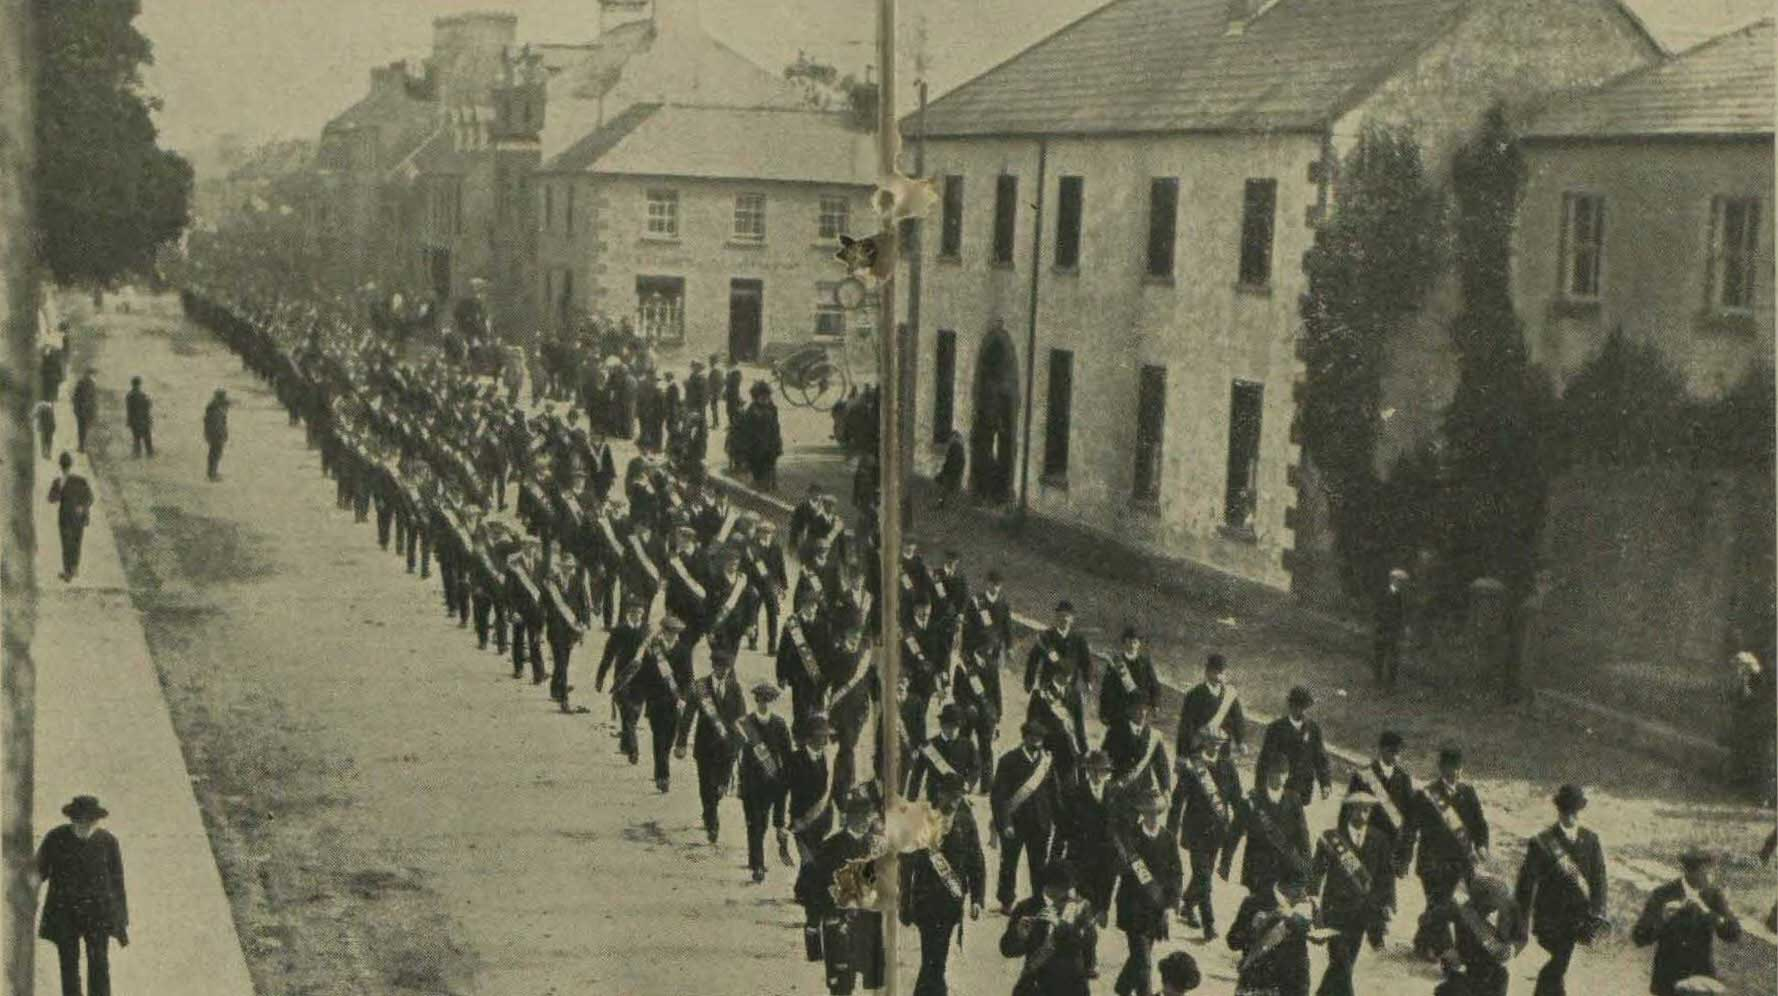 Ulster Volunteers drill at Cookstown